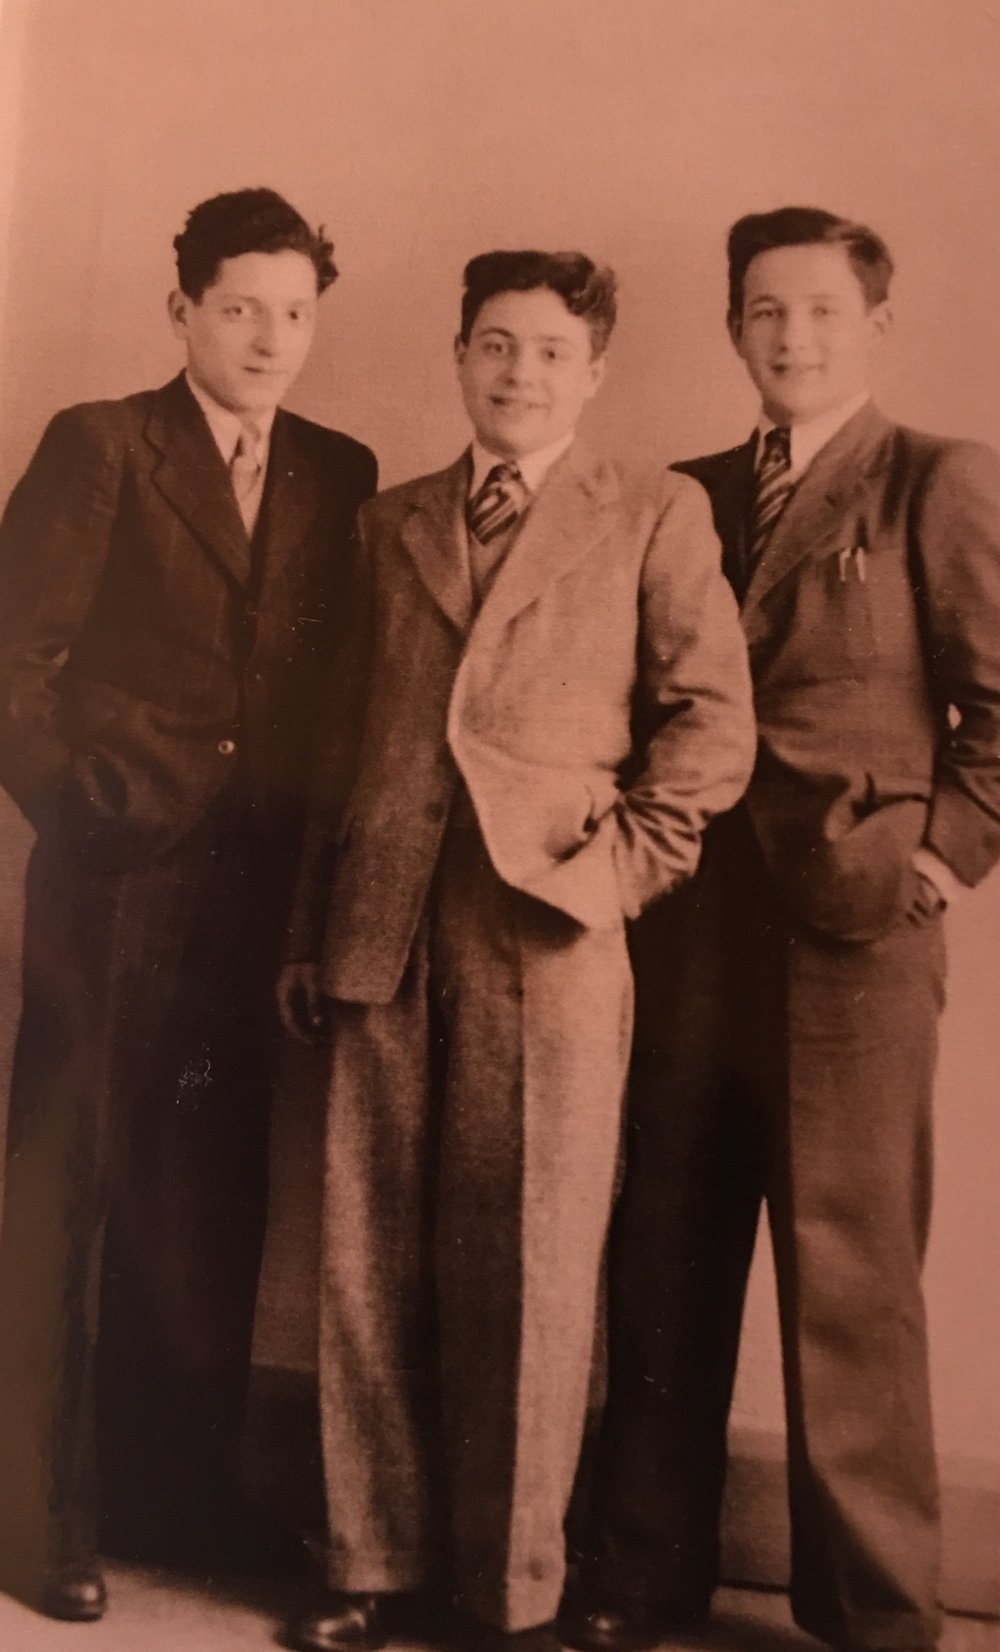 While at Ascot the boys were given suits by the tailoring firm Burton, and money to buy shoes. On the left is Martin Heyman. In the centre is Jacob Fersztand. The boy on the right is Natan Rolnik. Photo: Jacob Fersztand.